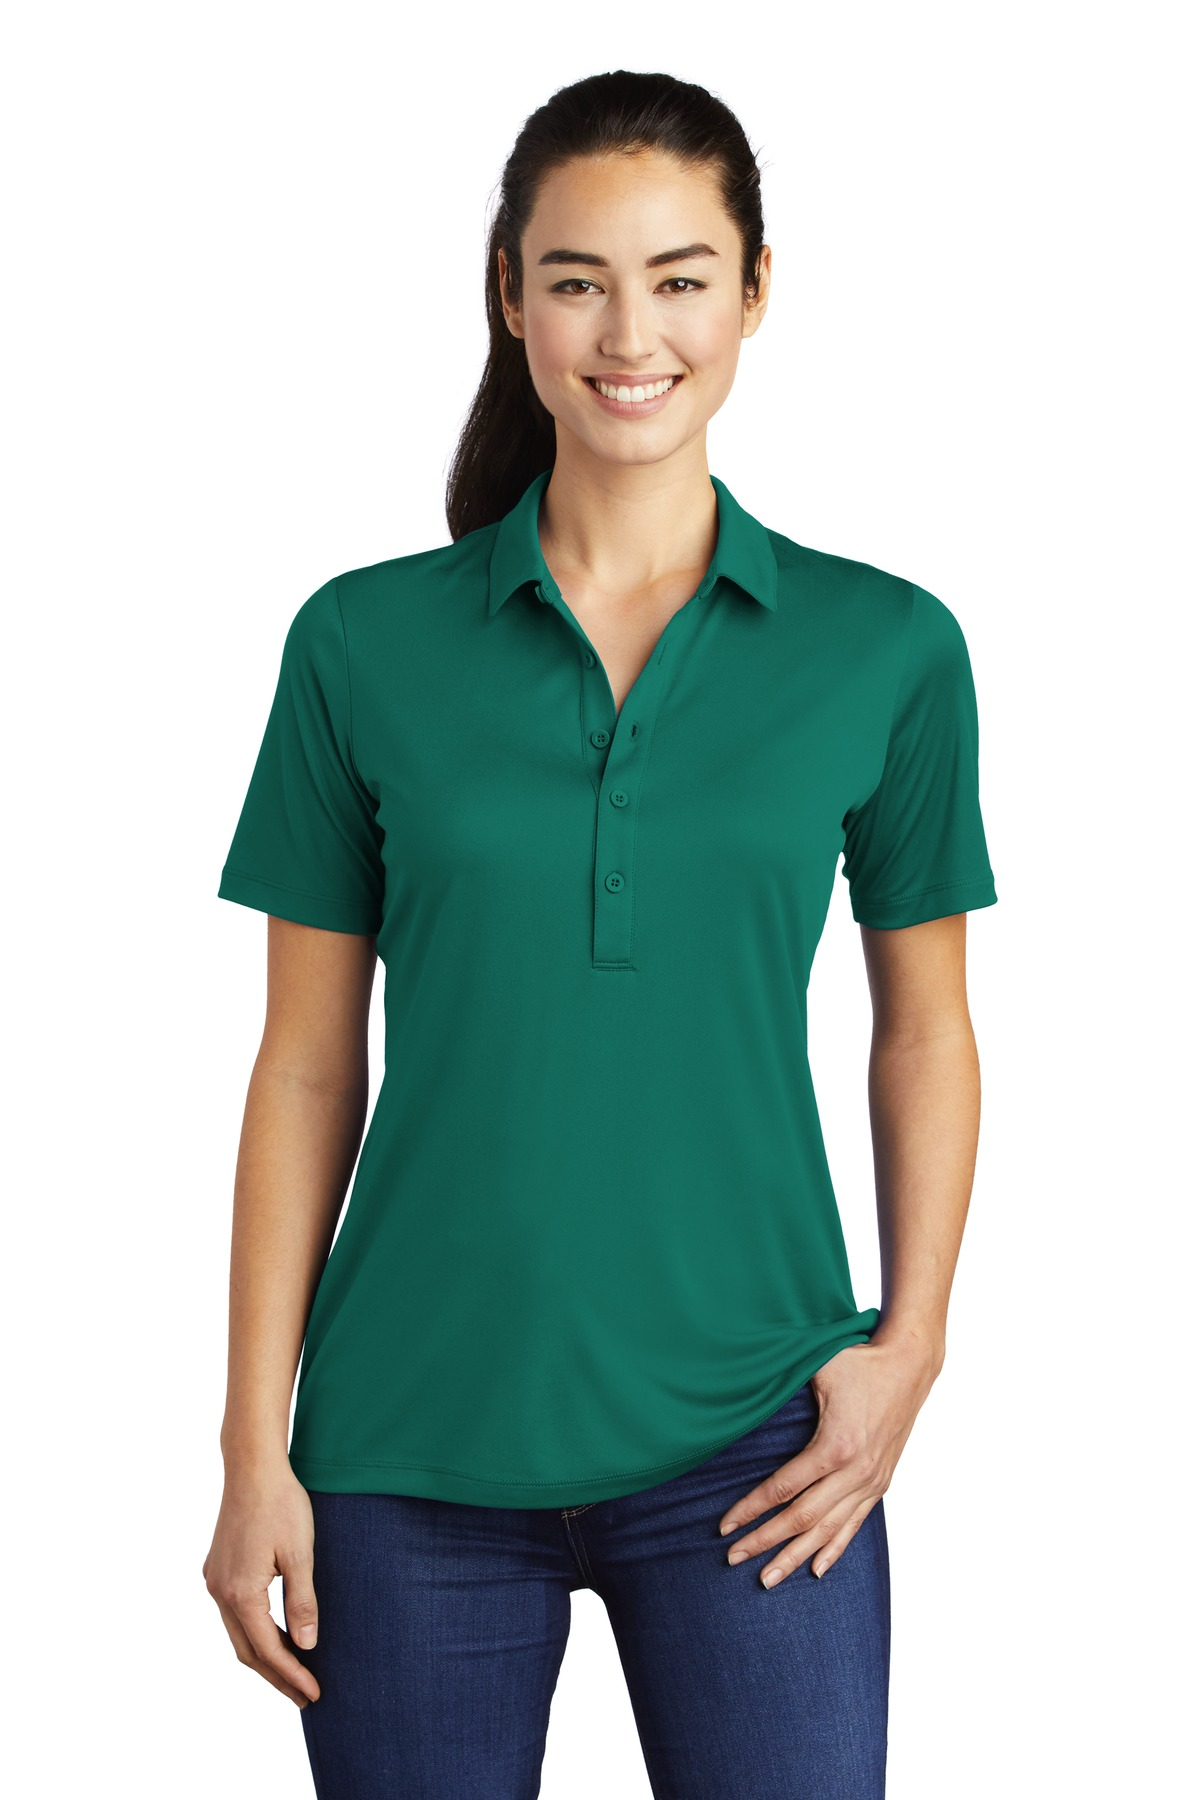 Sport-Tek ®  Ladies Posi-UV  ™  Pro Polo.  LST520 - Marine Green